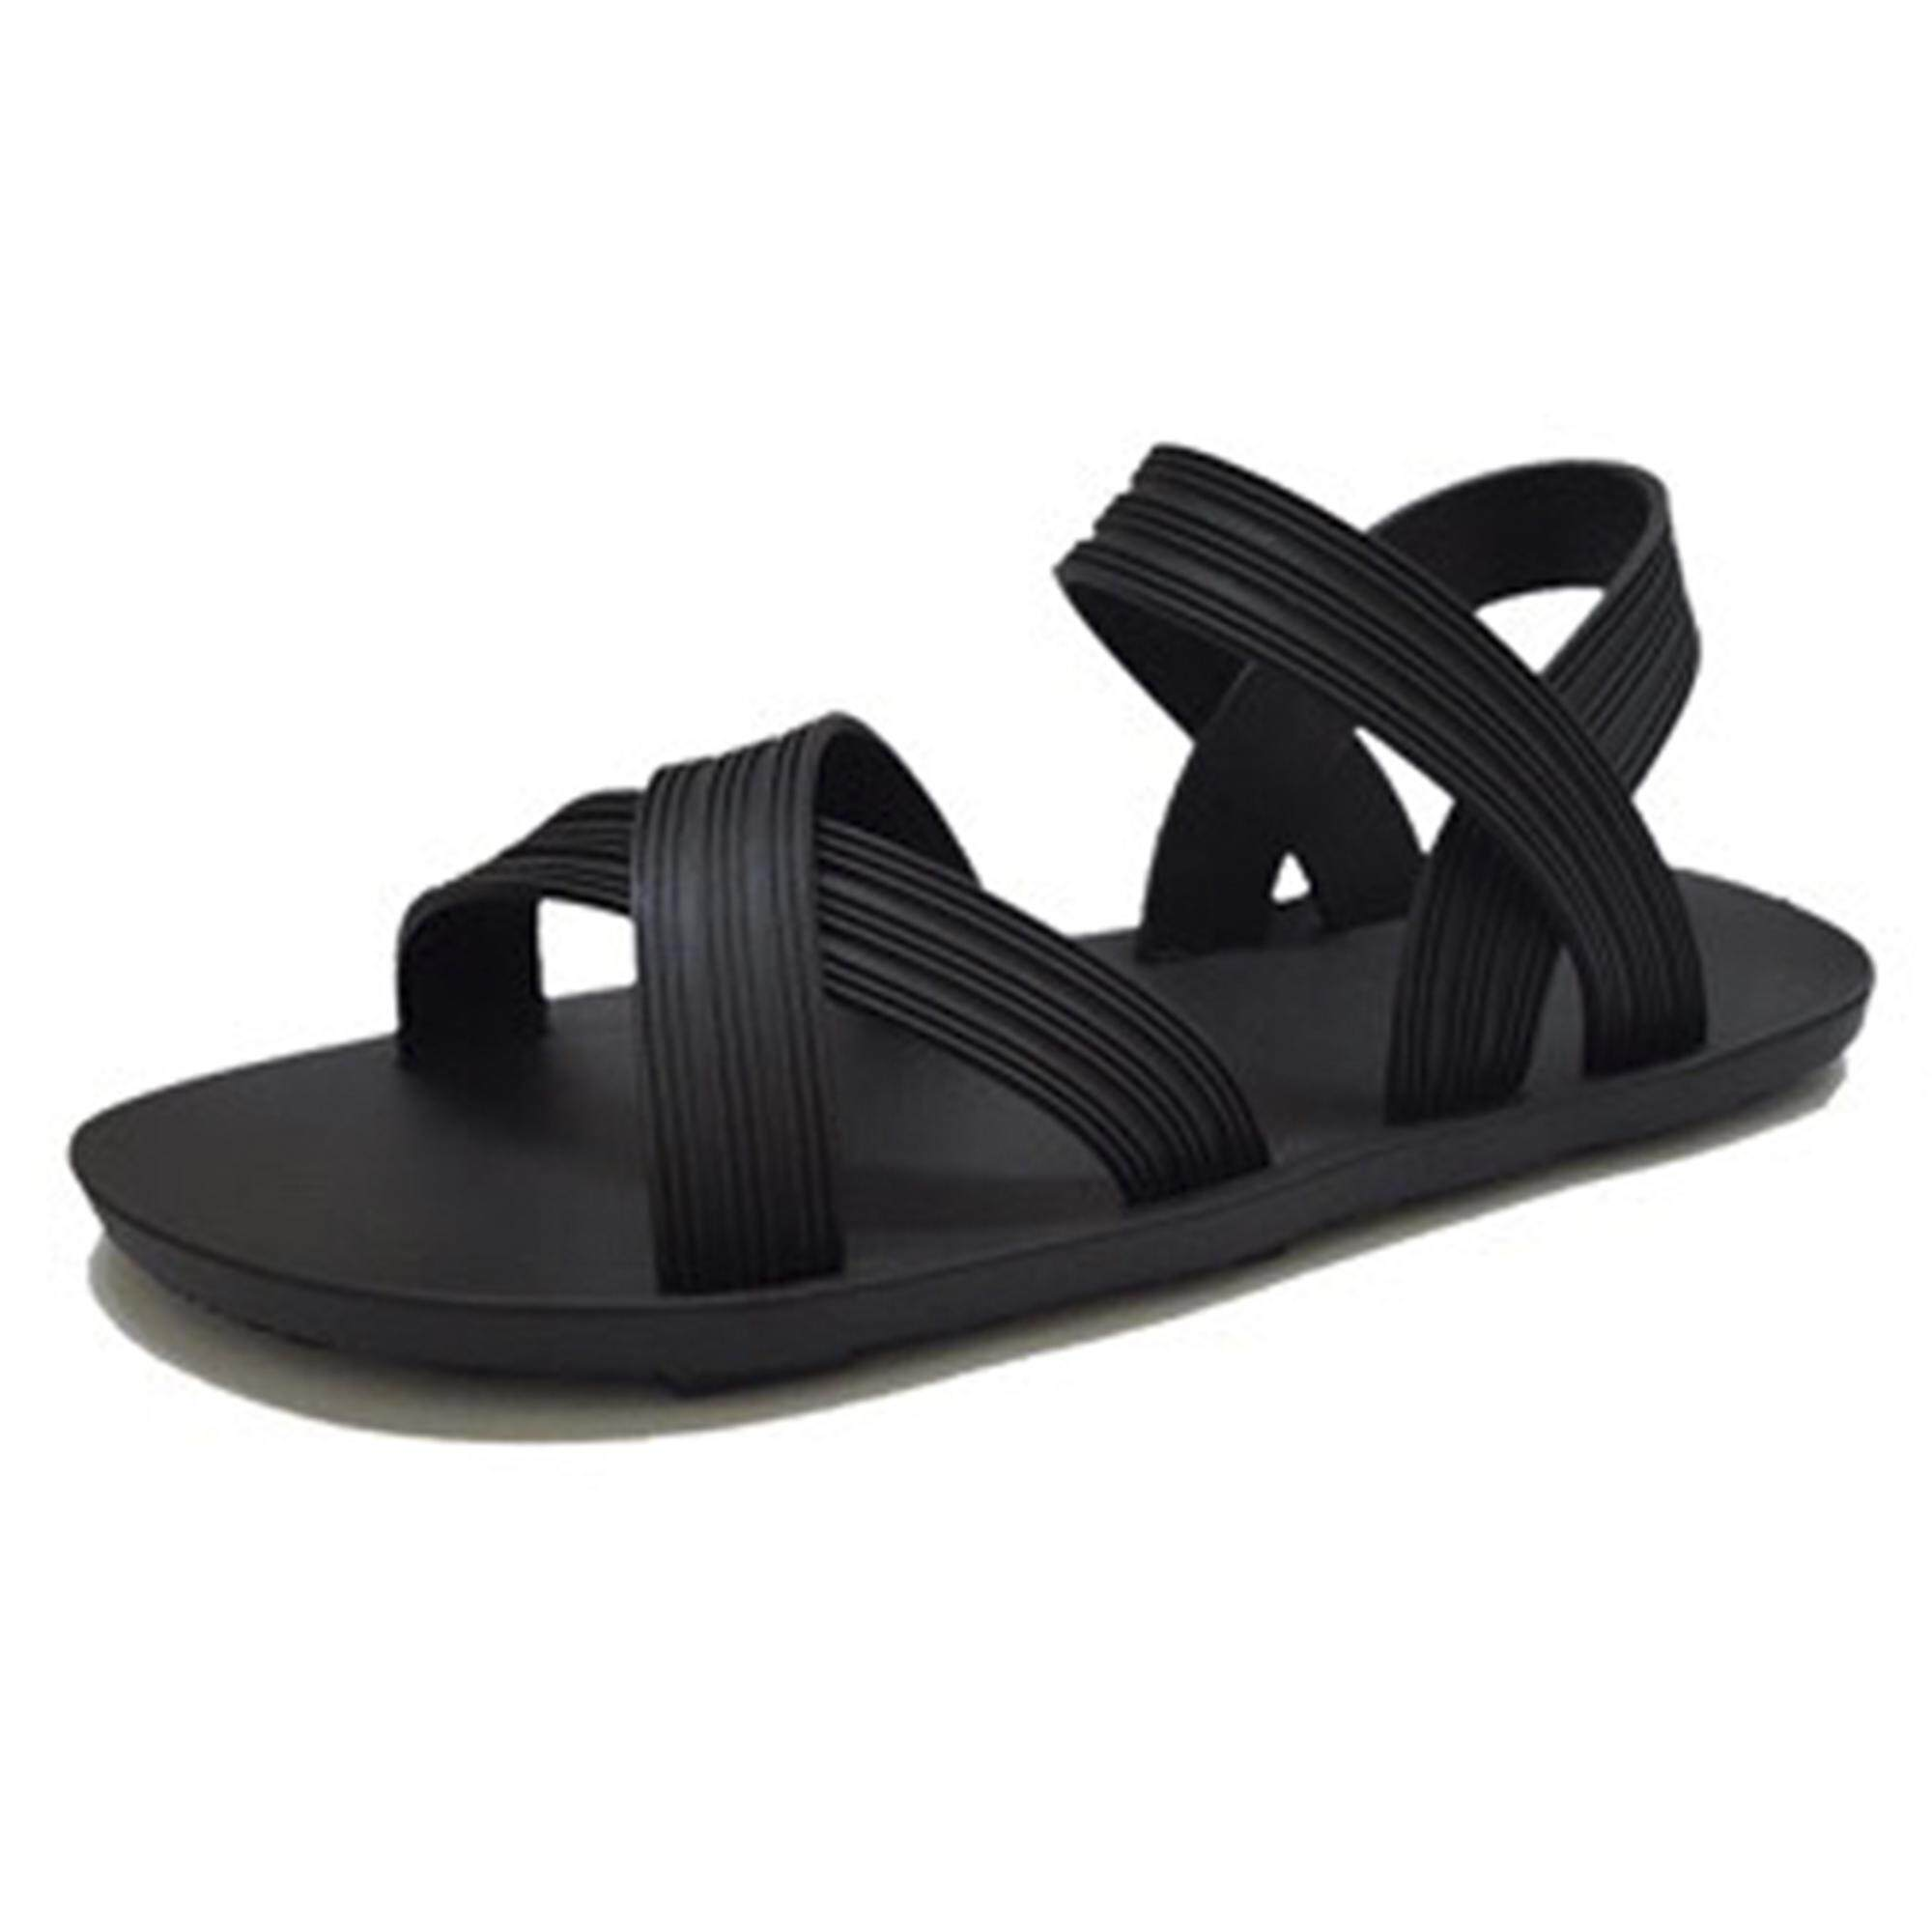 b81f6986f928 Women Flat sandals at Best Price In Malaysia